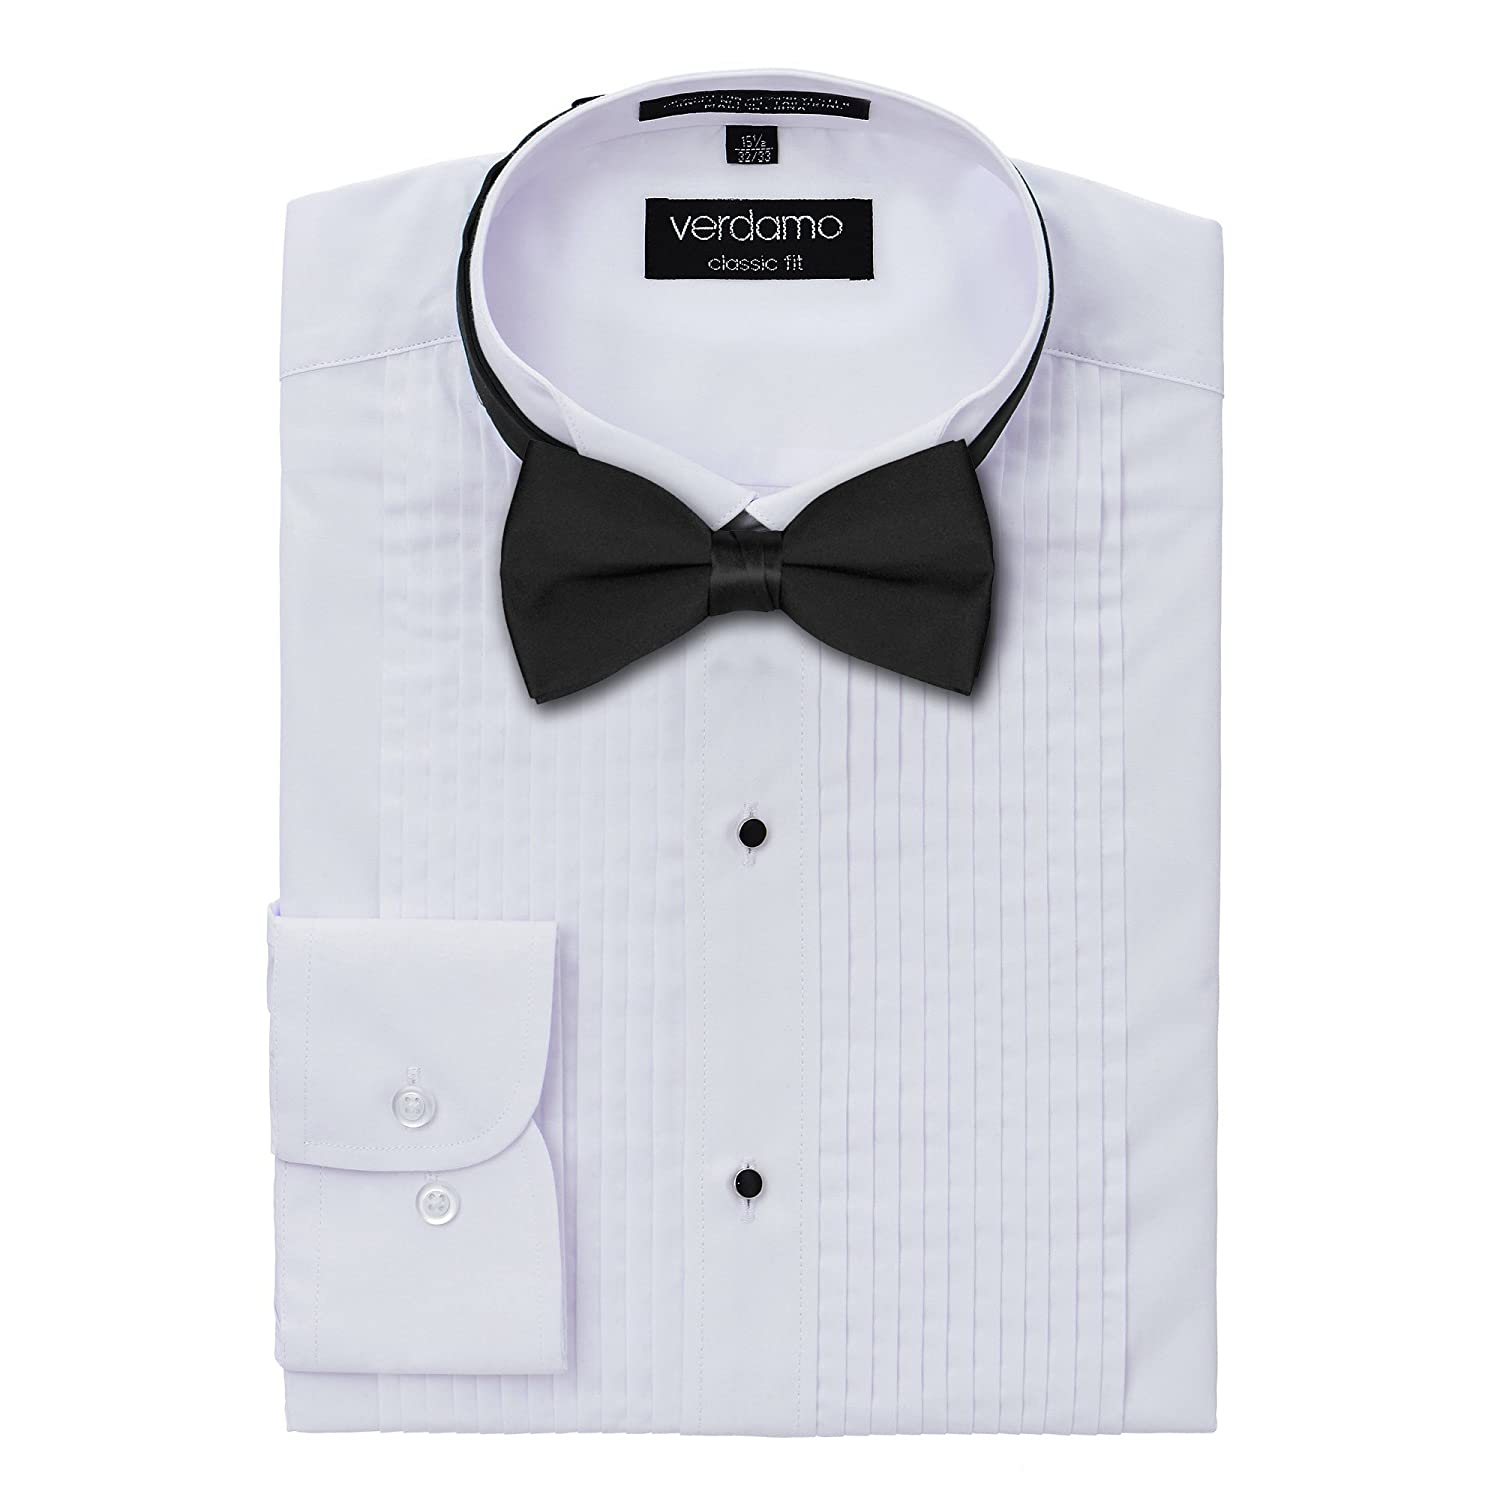 S.H. Churchill & Co. Men's Tuxedo Shirt and Bow Tie Set - Laydown Collar